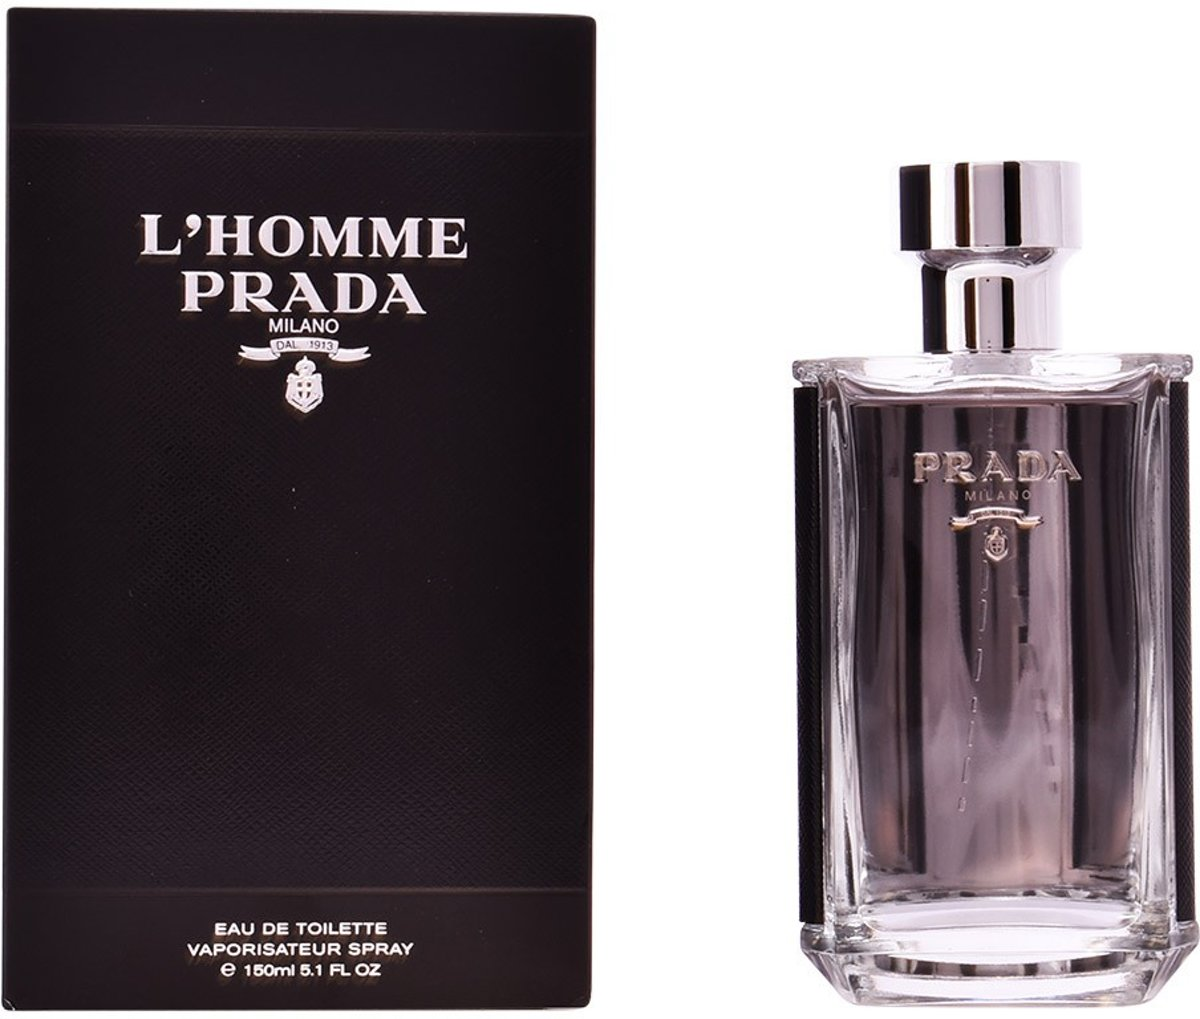 MULTI BUNDEL 2 stuks LHOMME PRADA Eau de Toilette Spray 150 ml